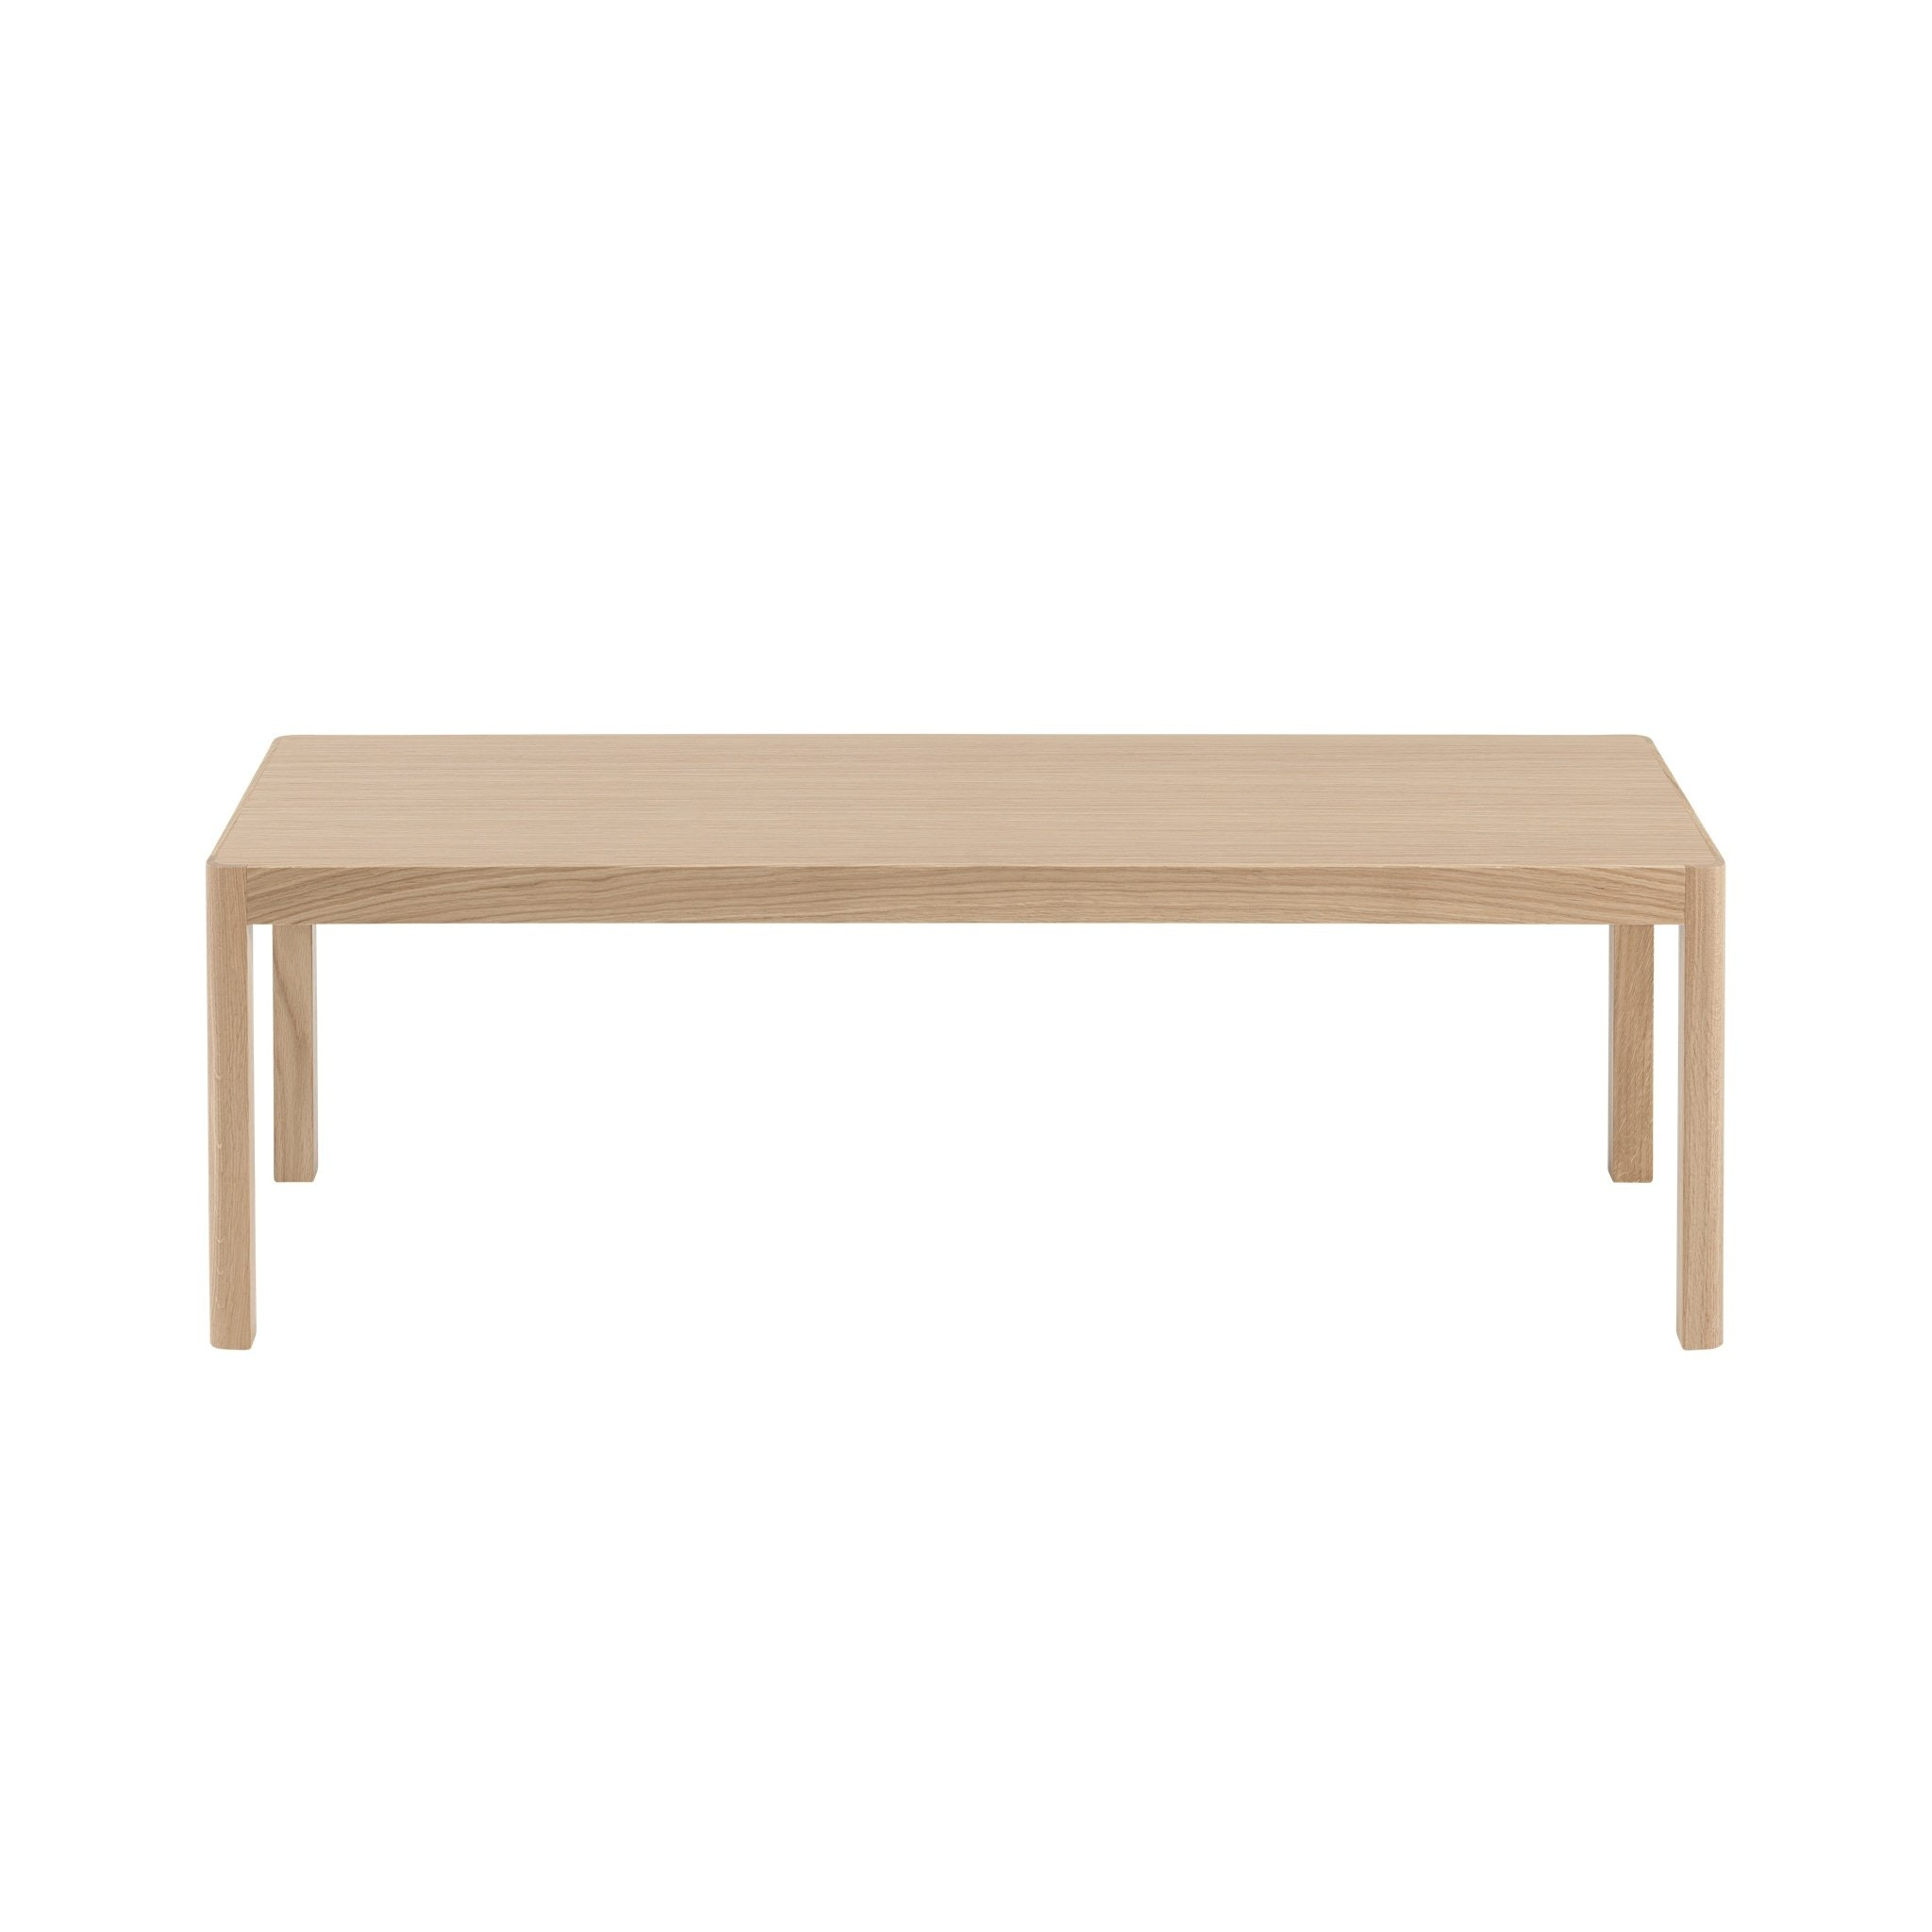 Workshop Coffee Table - Rectangular by Muuto